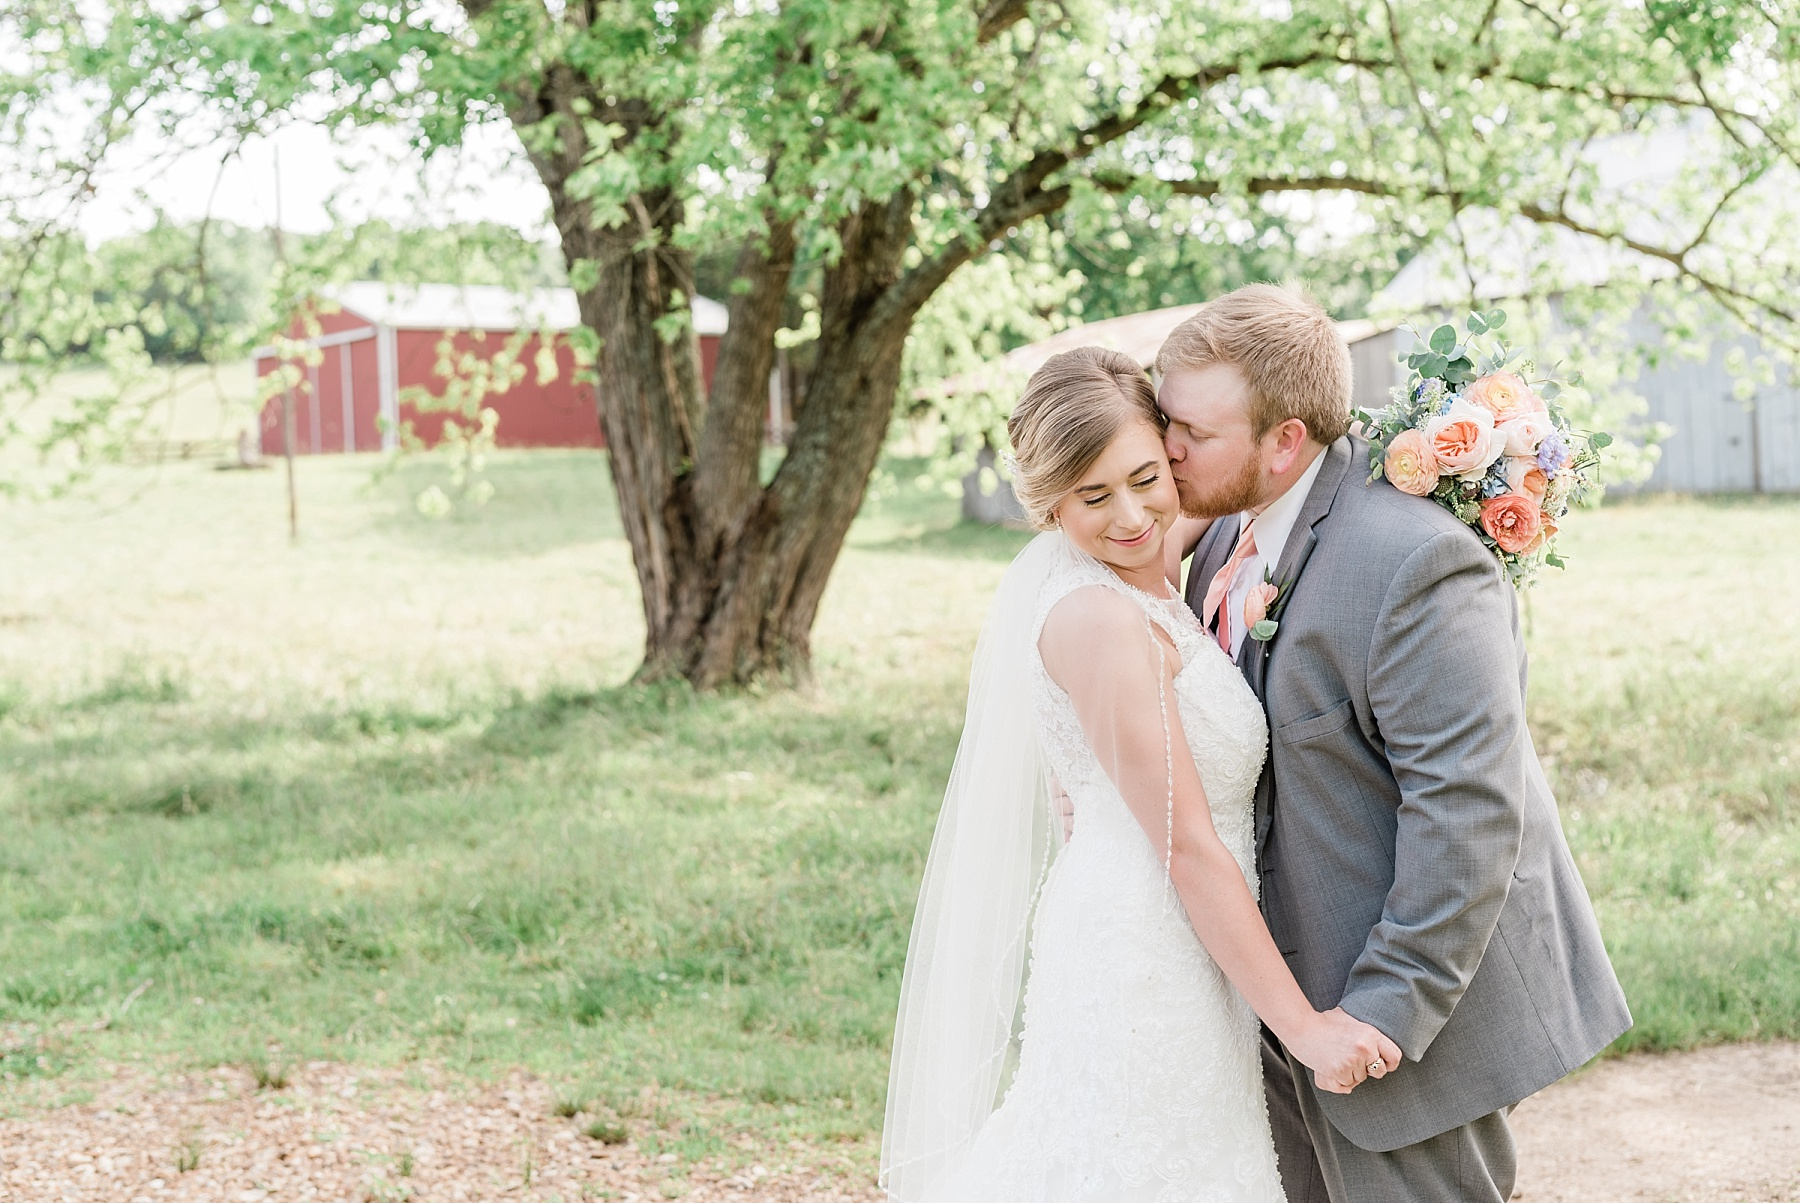 Peach and Dusty Blue Spring Wedding in Rolling Hills of Mid Missouri by Kelsi Kliethermes Photography Best Missouri and Maui Wedding Photographer_0016.jpg